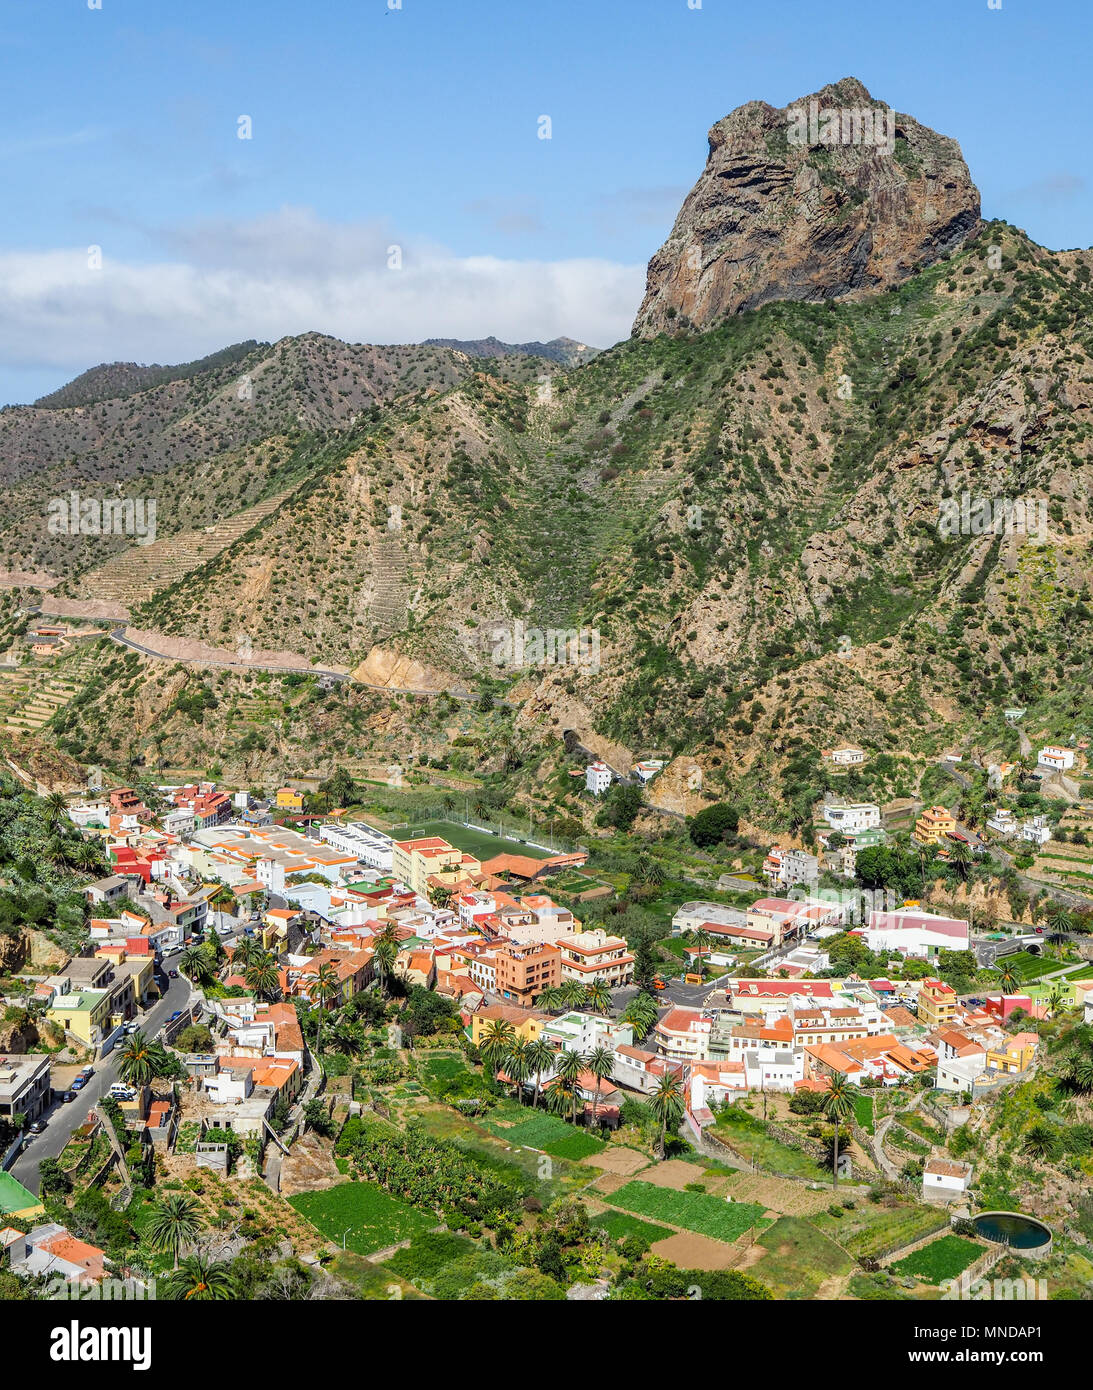 Looking down on the town of Vallehermoso dominated by the Roque el Cano in the north of La Gomera in the Canary Islands - Stock Image